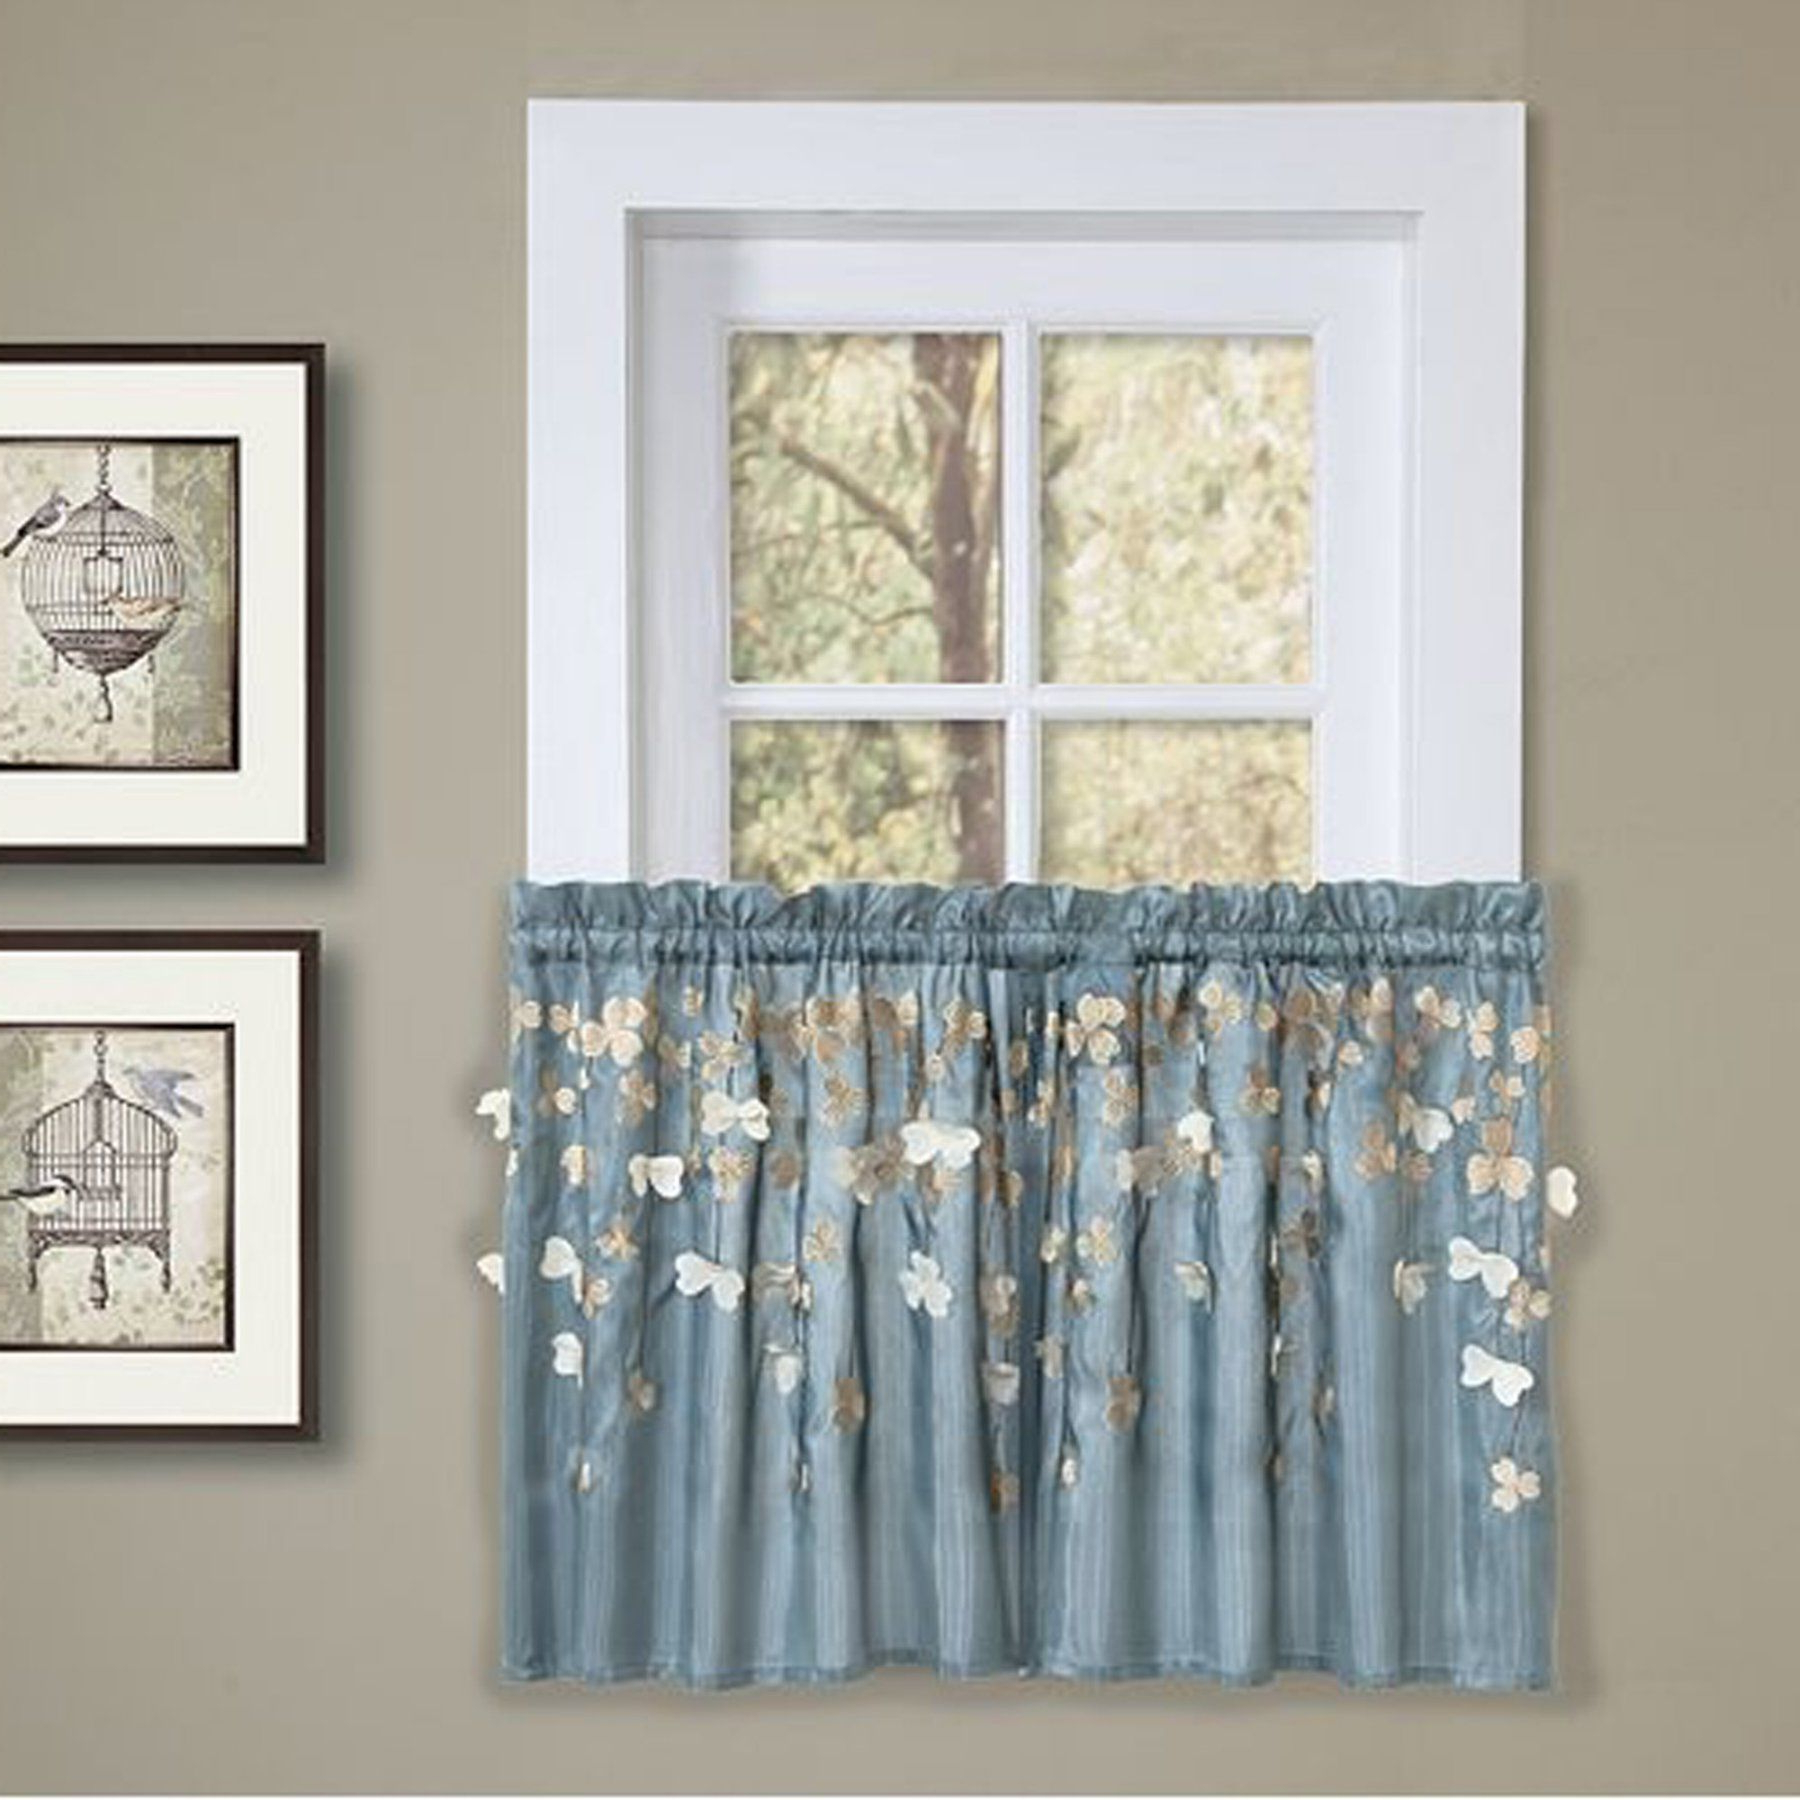 Semi Sheer Rod Pocket Kitchen Curtain Valance And Tiers Sets With Regard To Well Known Lush Decor Flower Drops Kitchen Tiers Pair – C10754P13  (View 16 of 20)